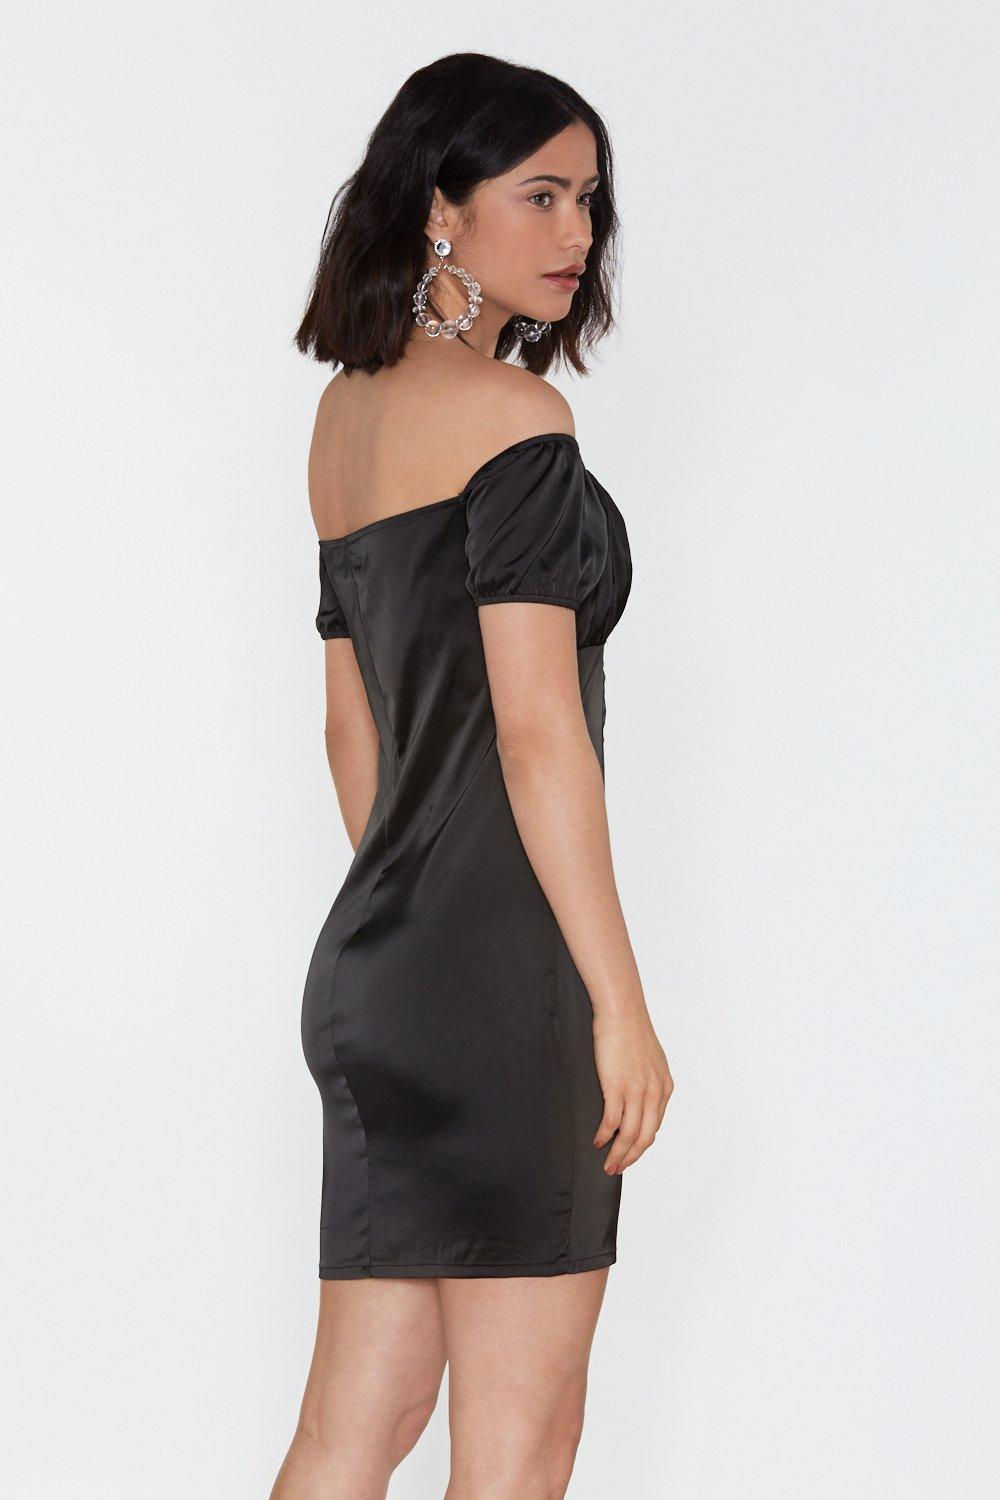 30cd6094344 ... Busted Satin Off-the-shoulder Dress - Lyst. View fullscreen